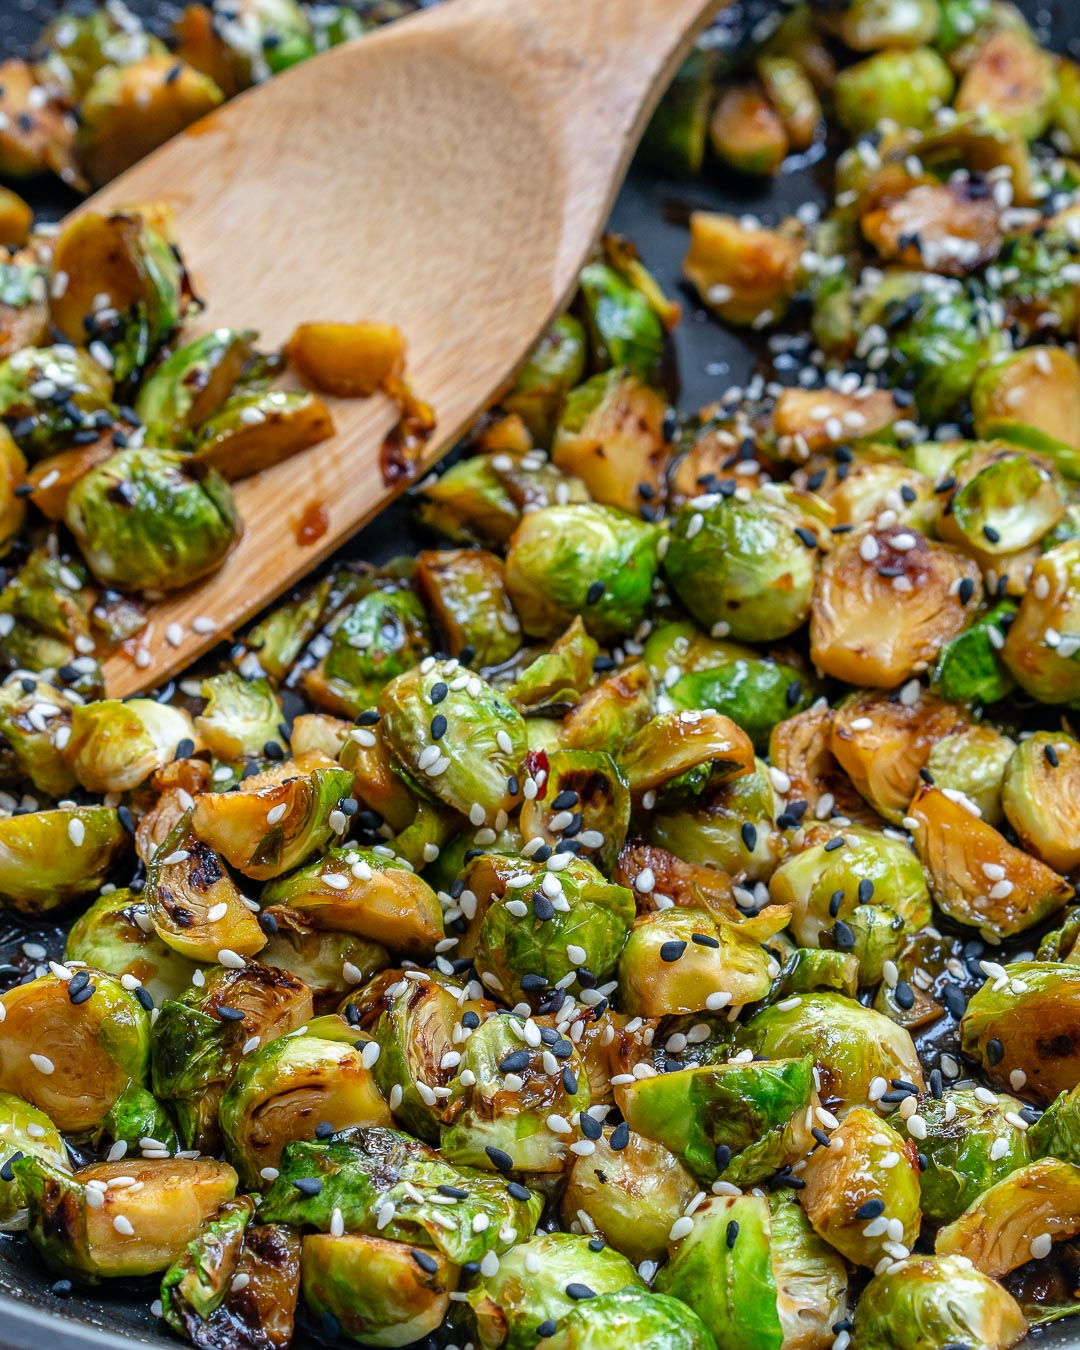 CleanFoodCrush Stir fried Brussels